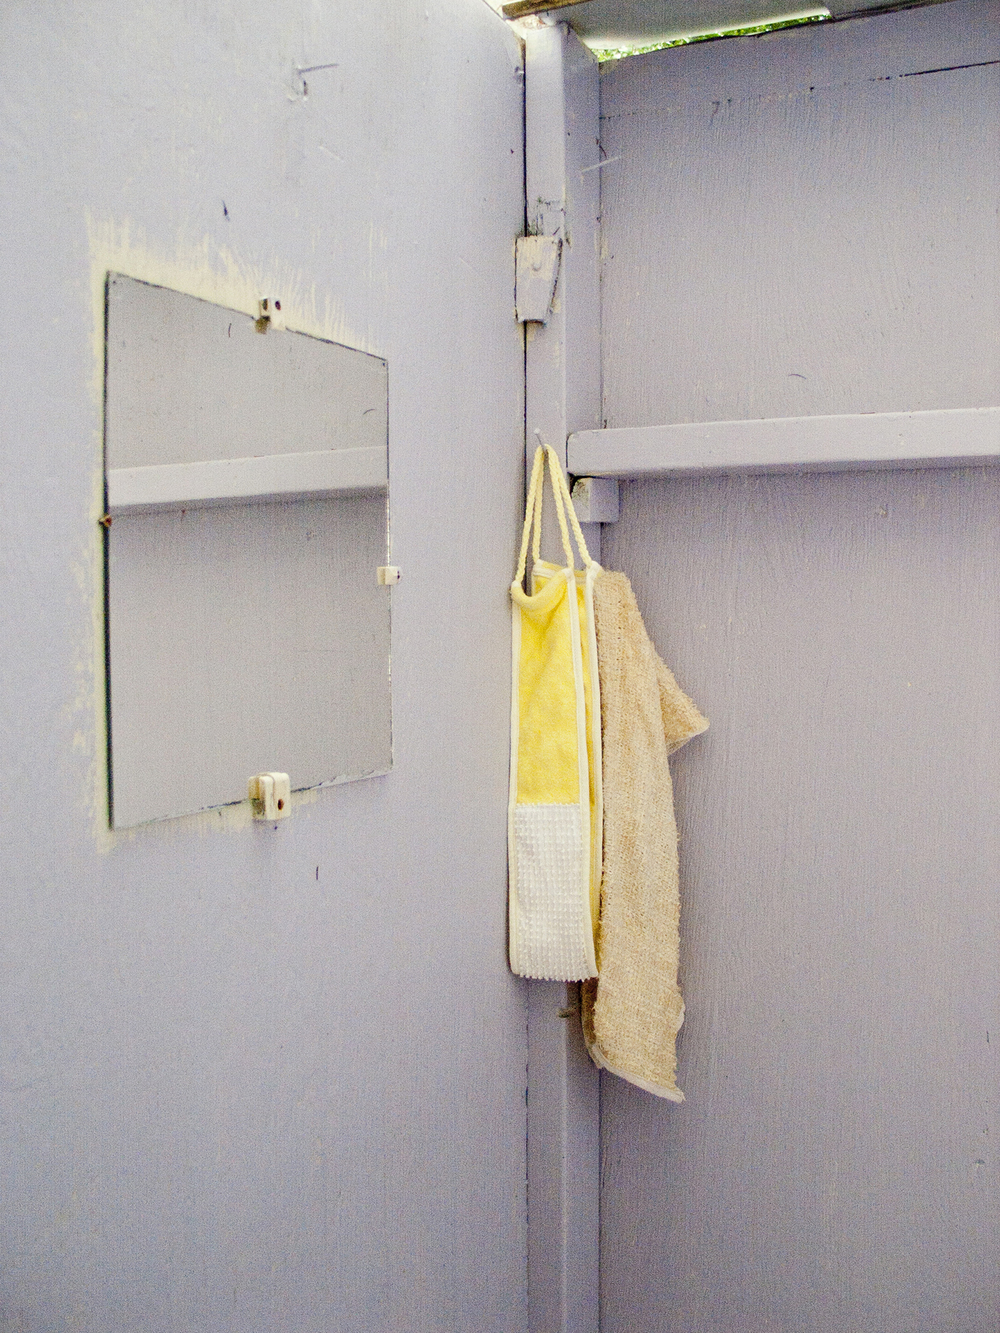 Shower_yellowtowel.jpg